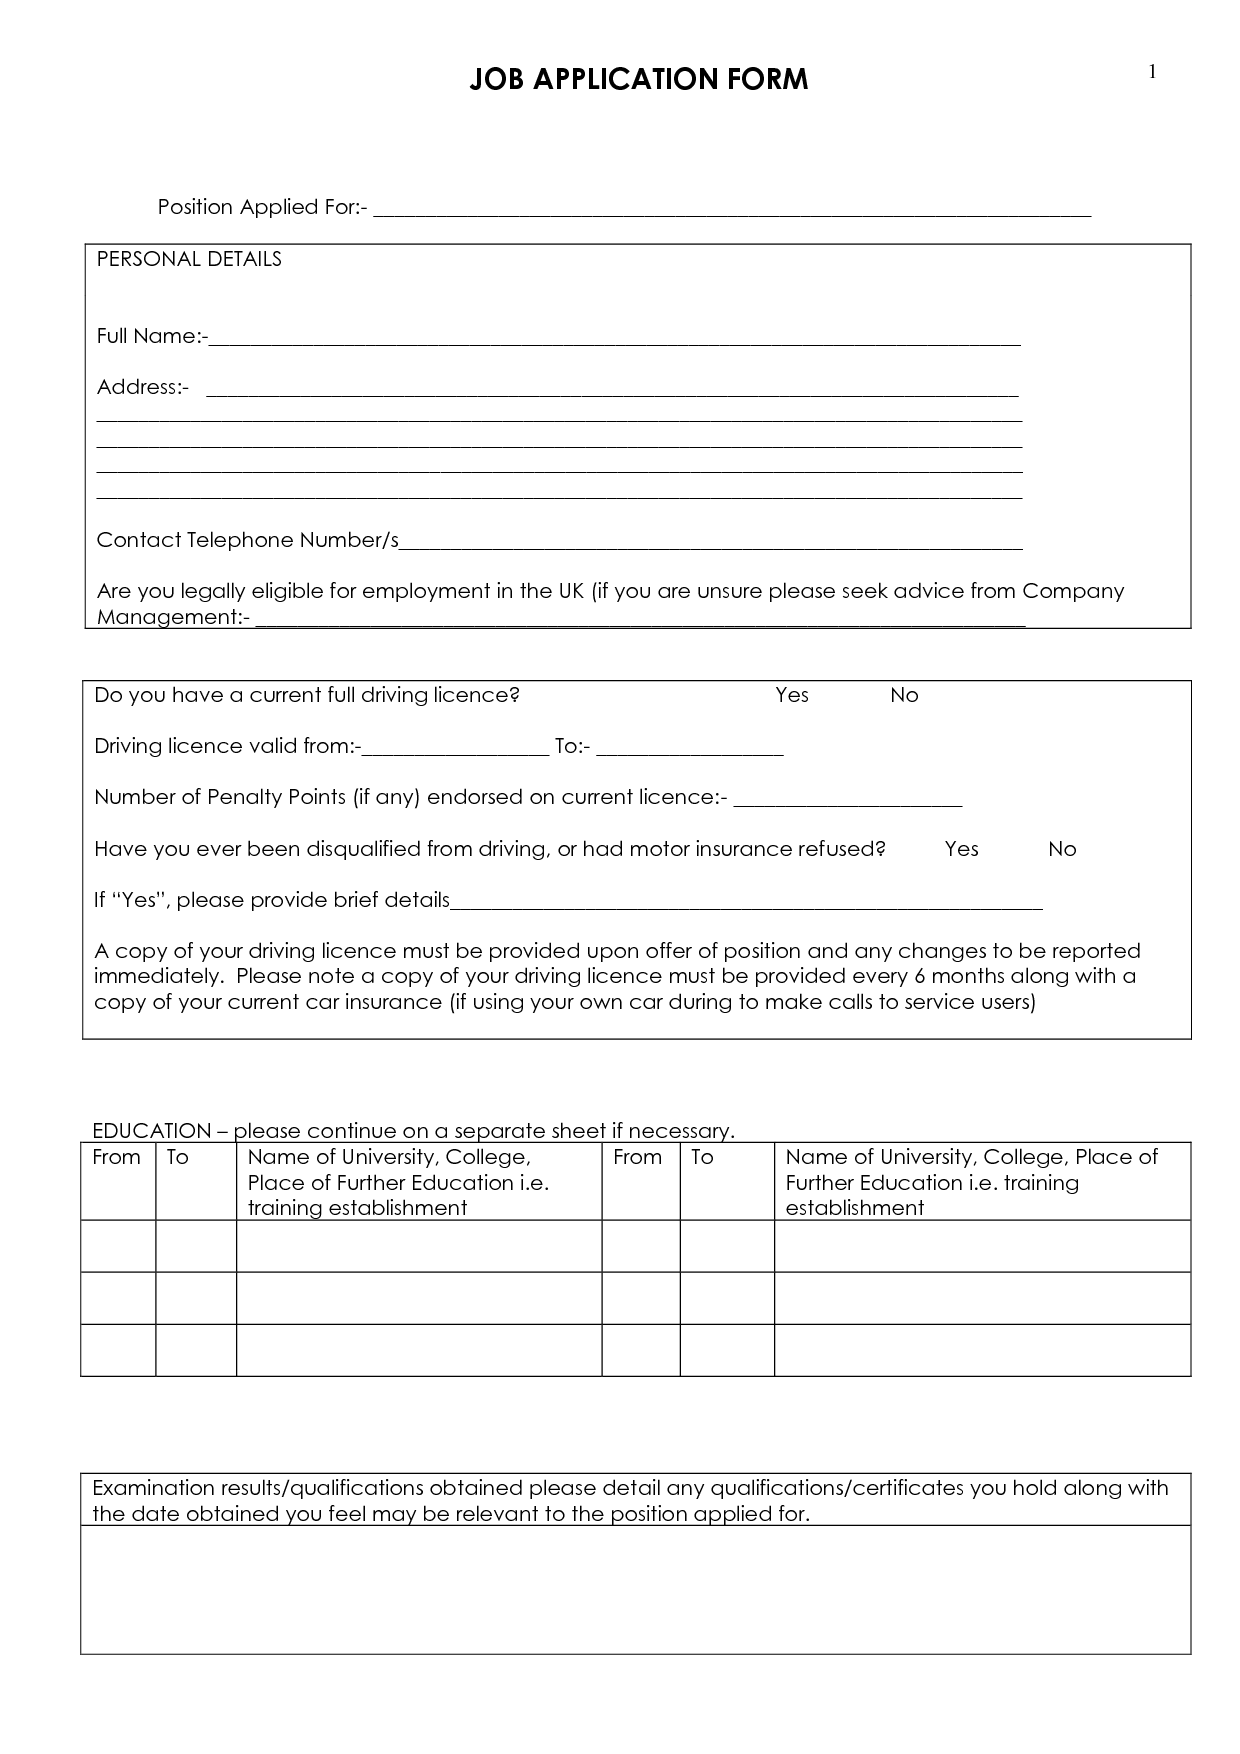 Blank Job Application Forms Job Application Form Job